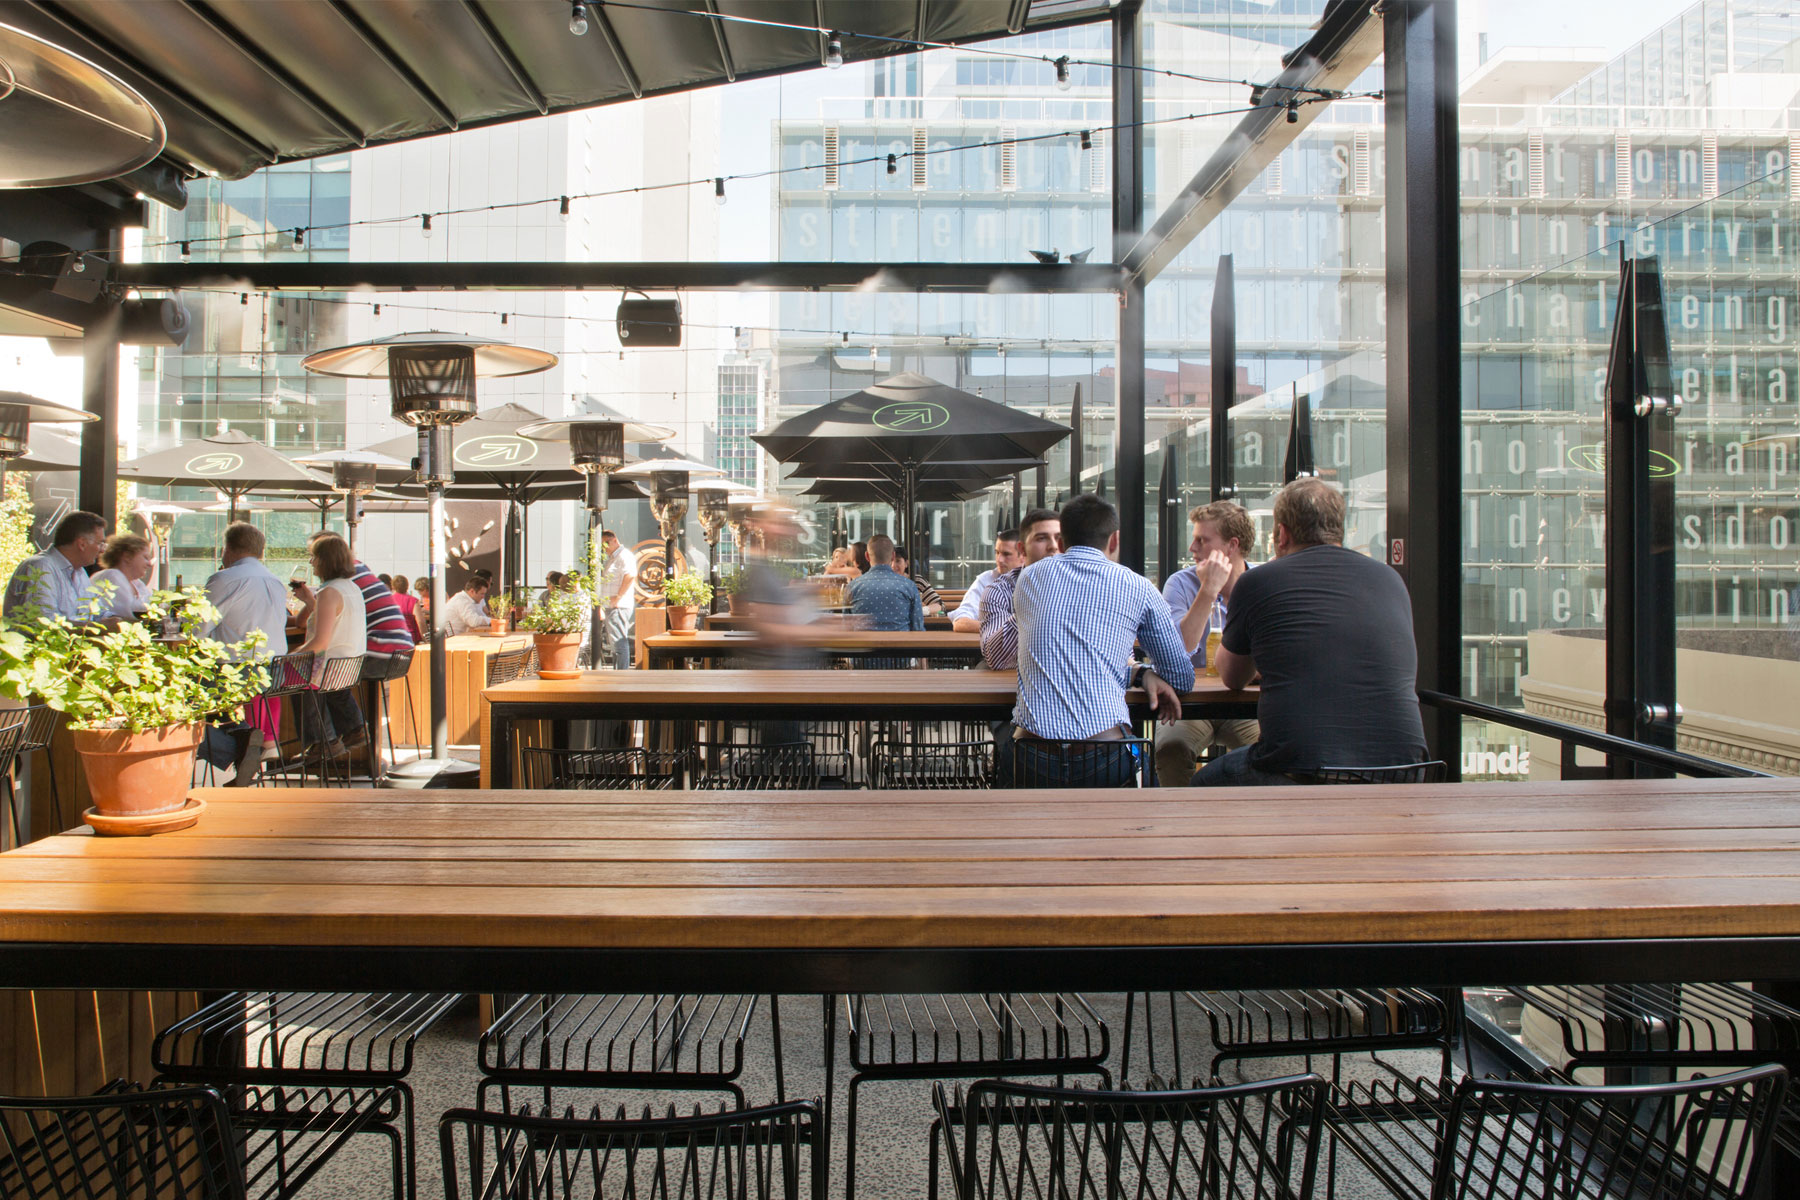 The Rooftop Bar has become one of Adelaide's most popular spaces